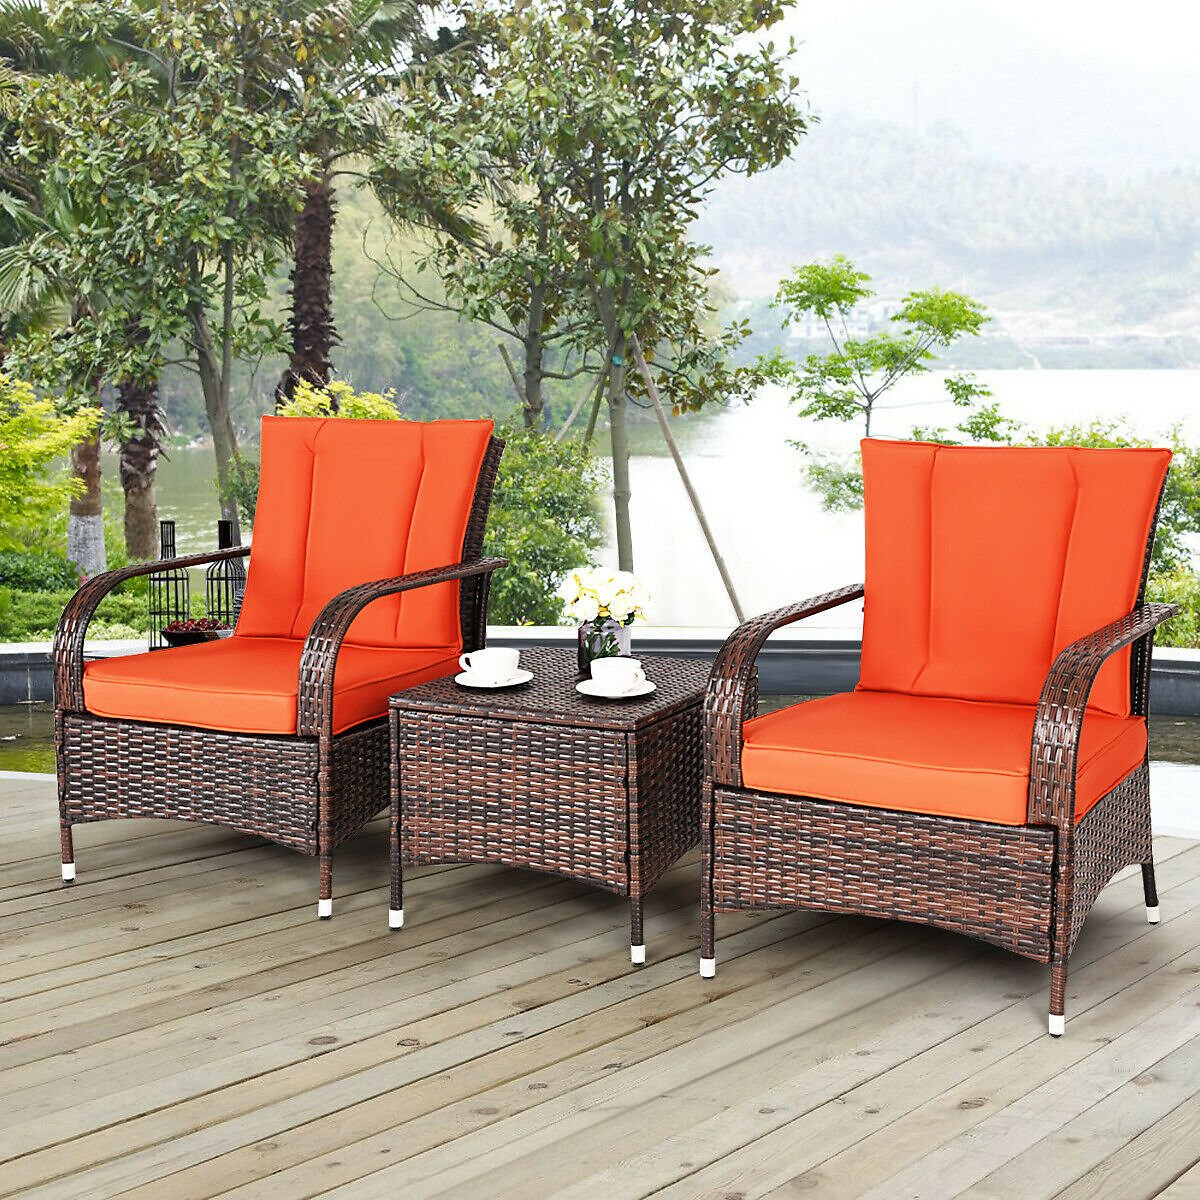 Costway 3PCS Outdoor Patio Mix Brown Rattan Wicker Furniture Set Seat with Orange Cushions